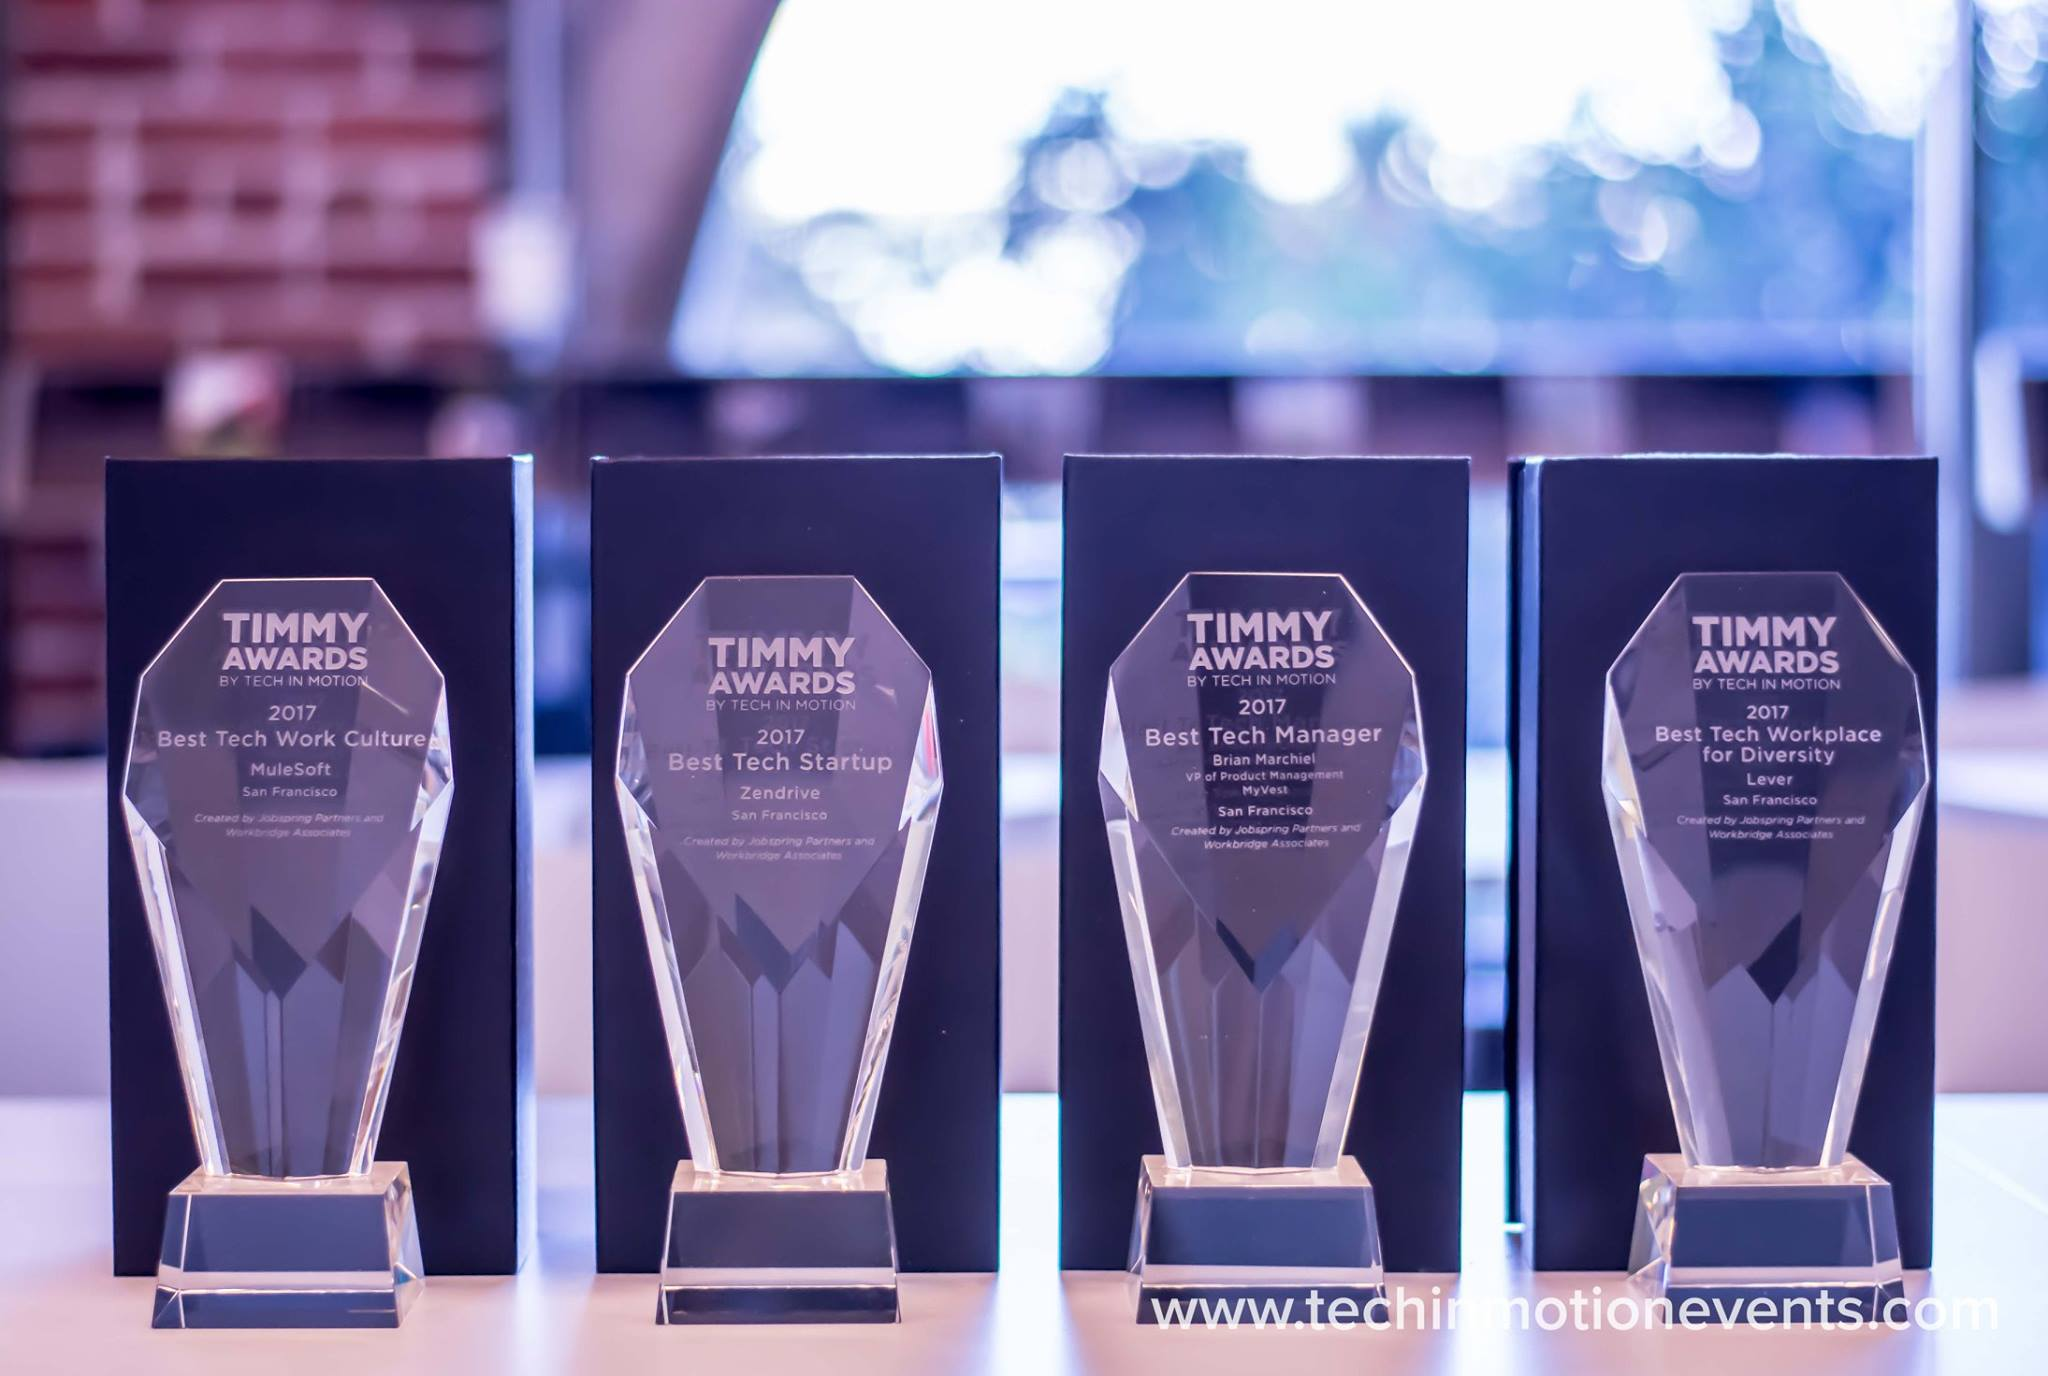 Timmy Awards Categories and Trophies